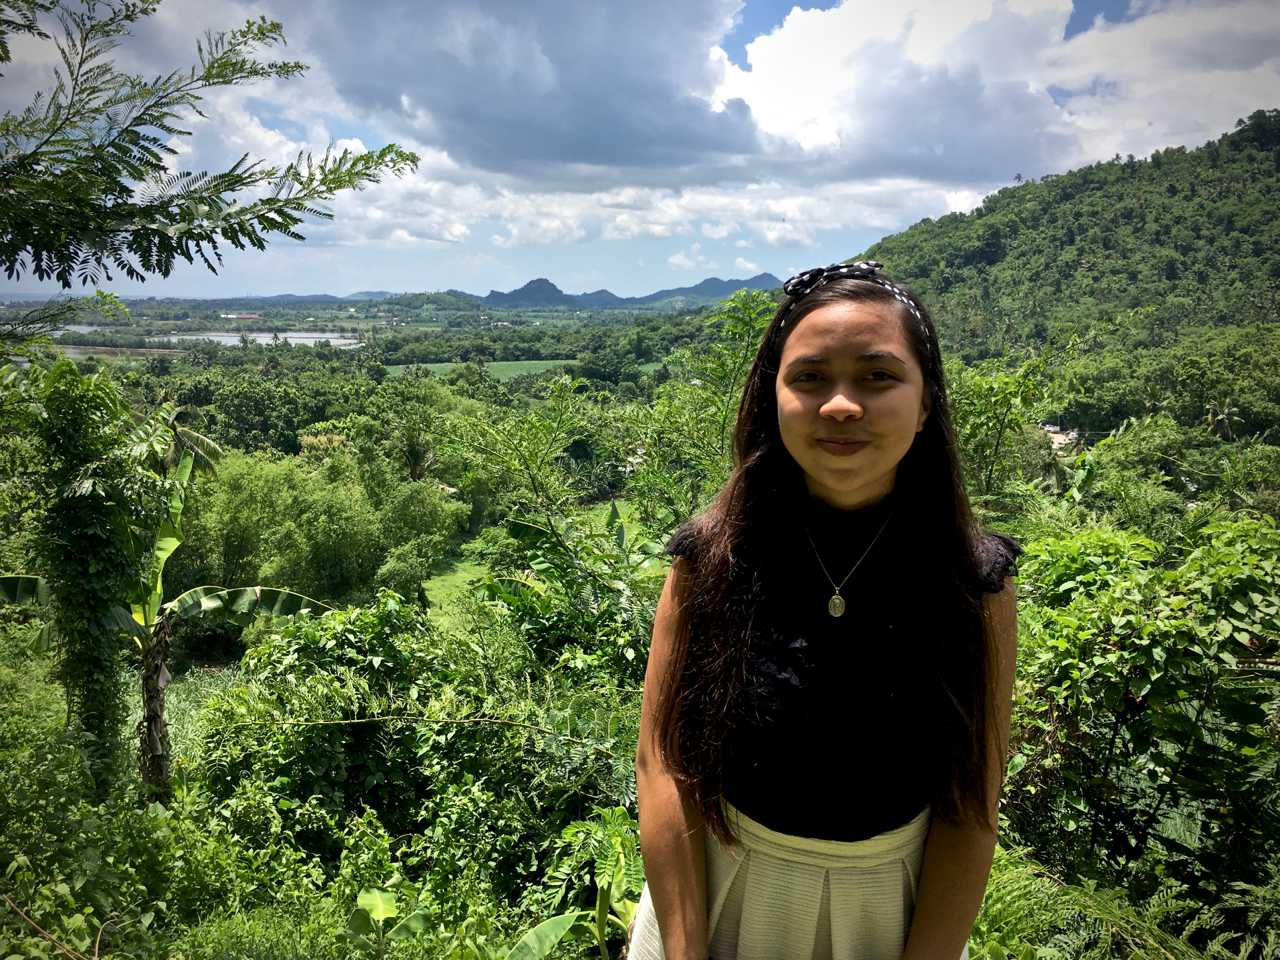 Eunice in front of the farmlands of Capiz, Philippines